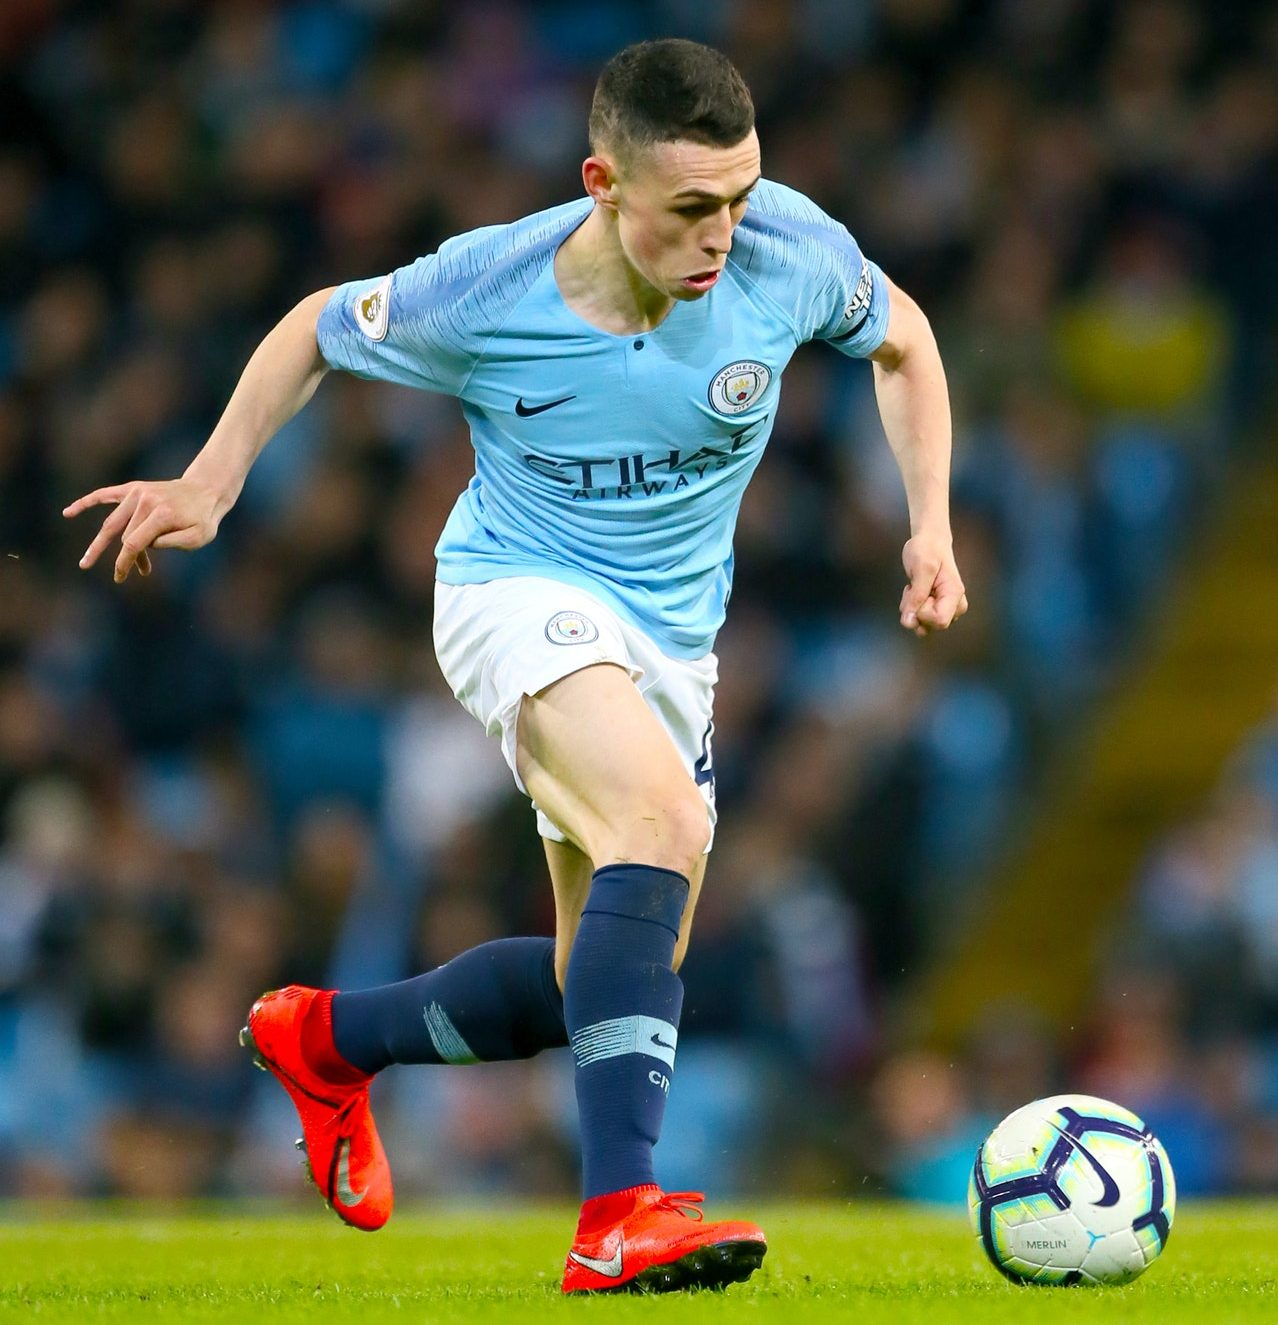 Guardiola Expected 'Special' Foden's Rise